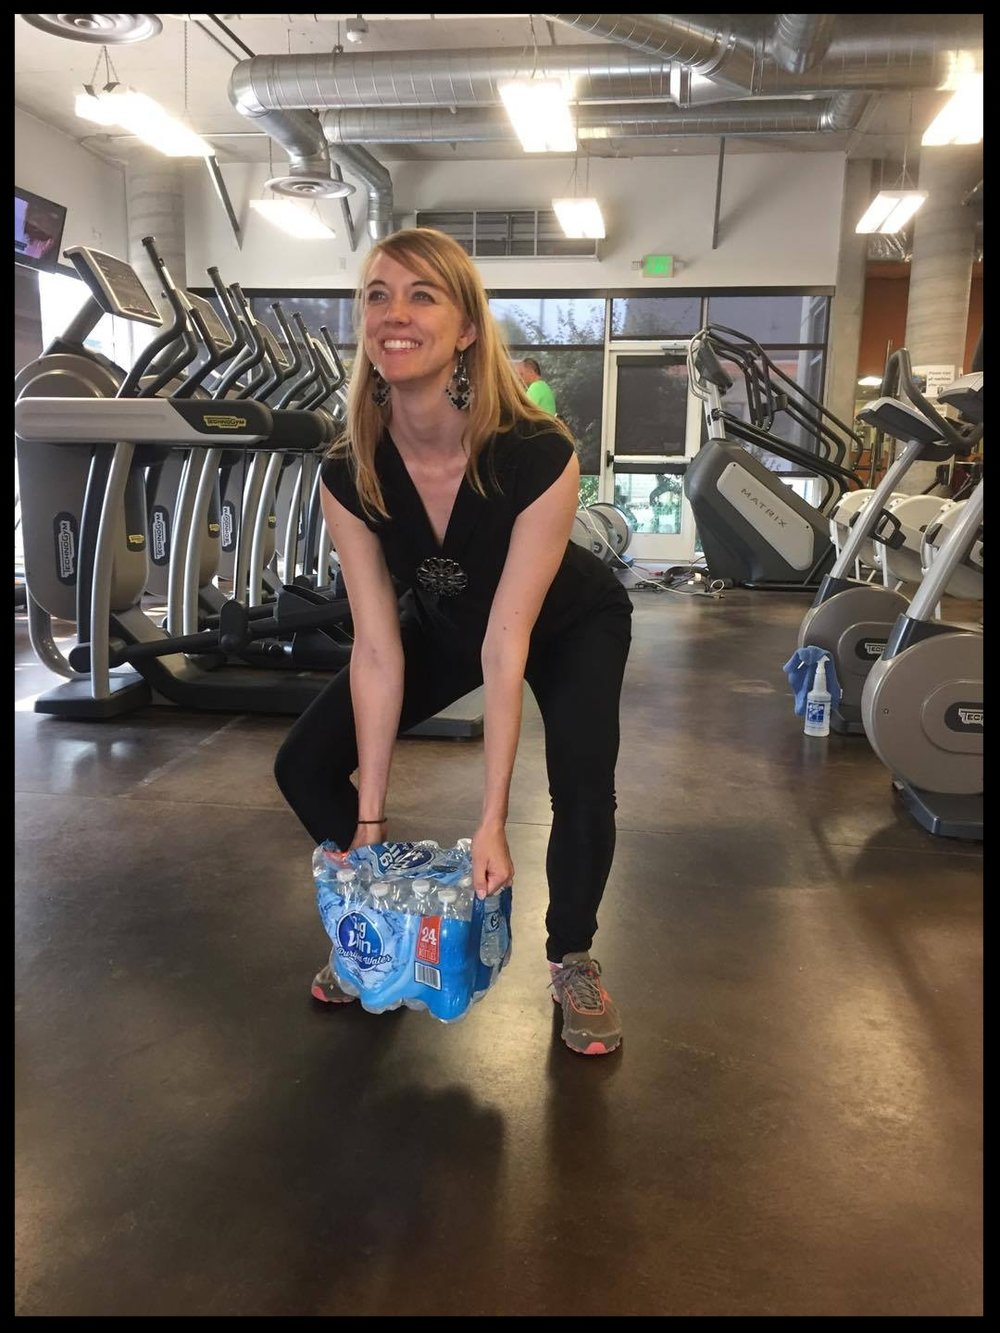 Applying squats & deadlift motions as learned at Group Training to real life (a.k.a. carrying bottles of water)